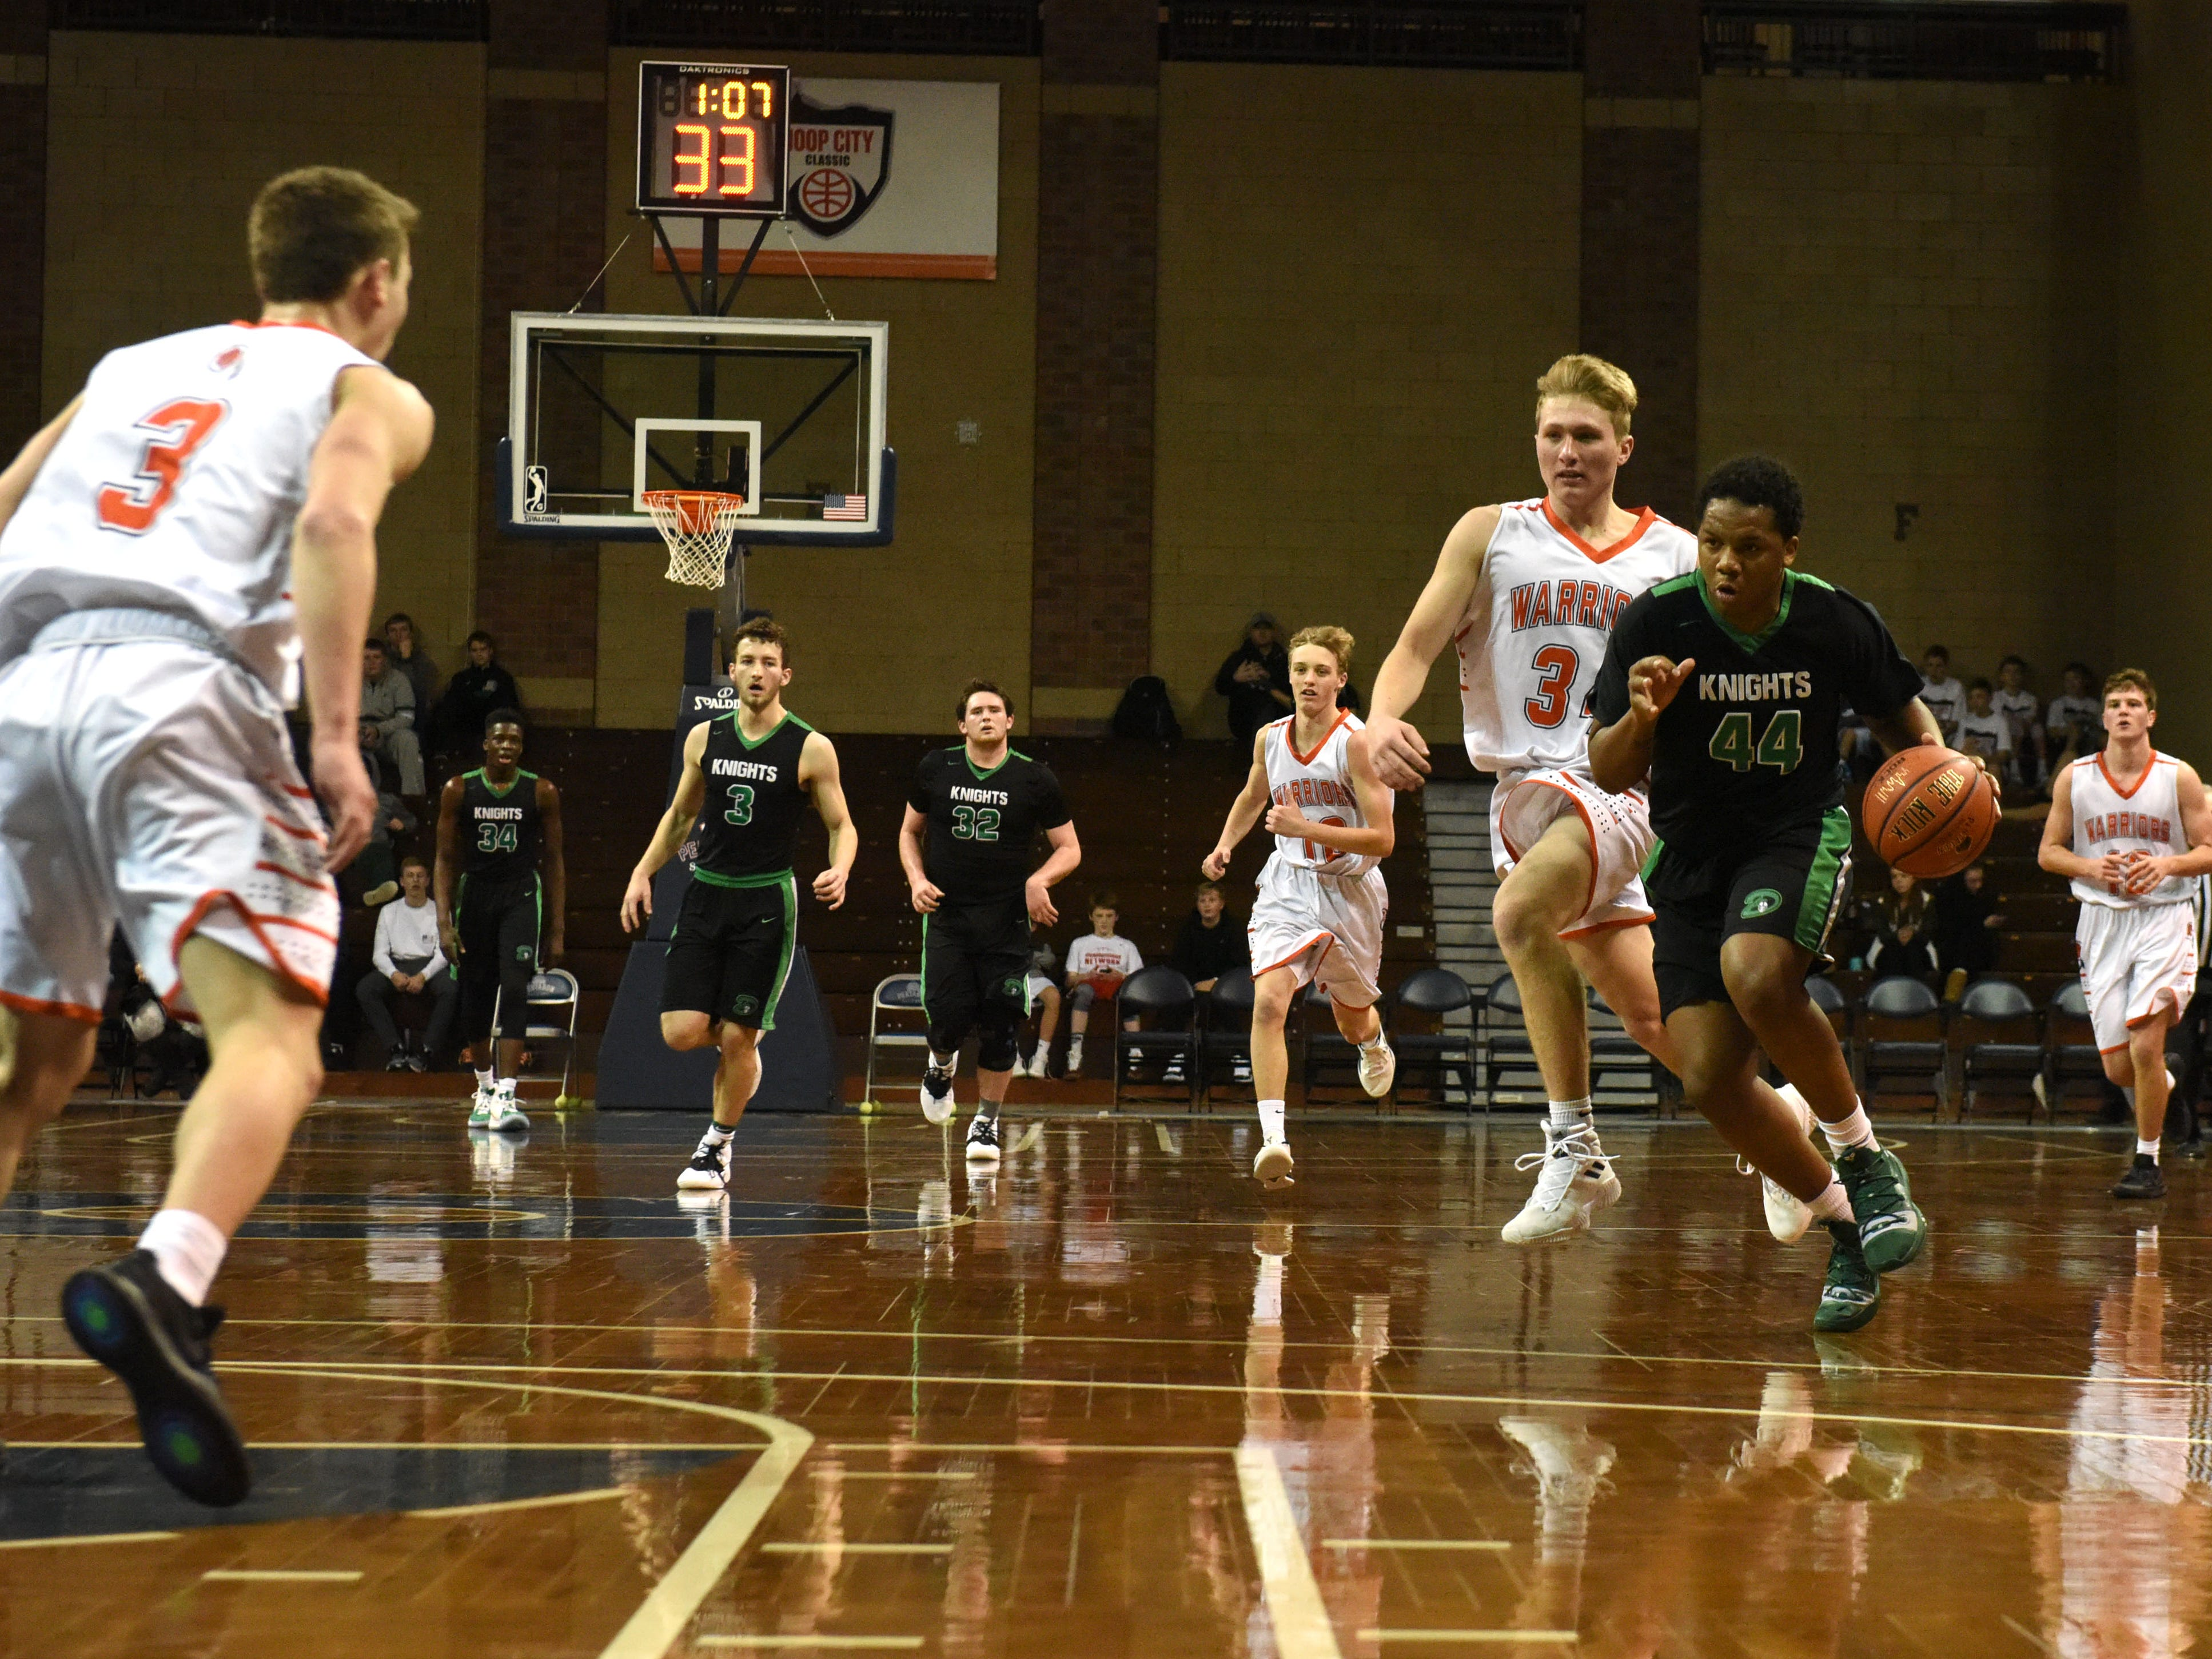 Dominican's Delone Austin (44) dribbles the ball past Washington players at the Hoop City Classic at the Sanford Pentagon in Sioux Falls, S.D., Saturday, Dec. 29, 2018.